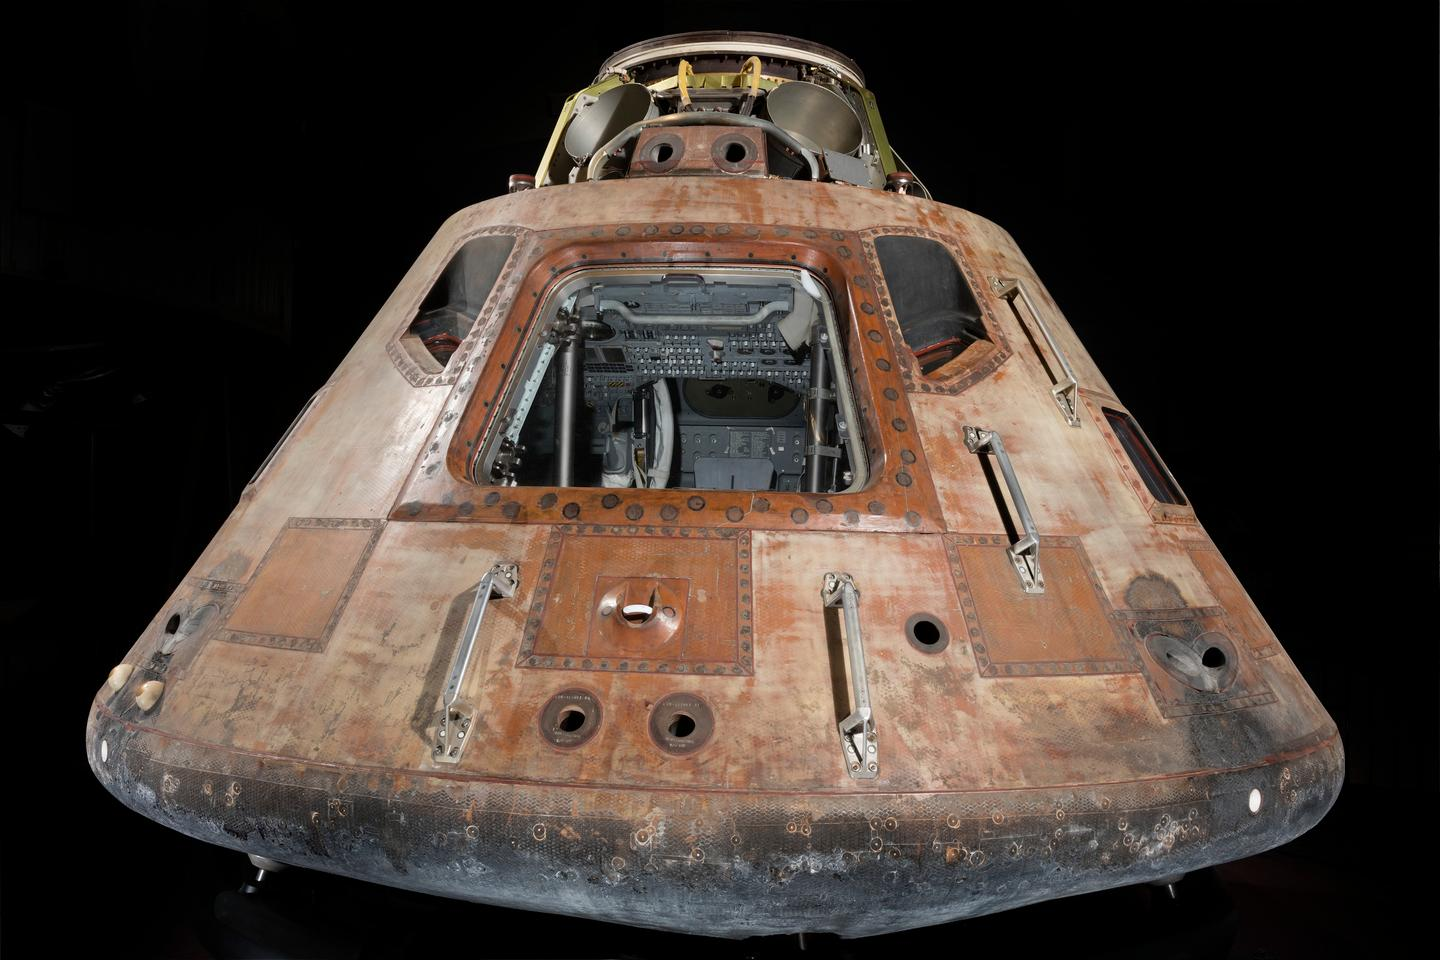 The command module from Apollo 11 – the living quarters of Armstrong, Aldrin and Collins on the first lunar landing mission in 1969